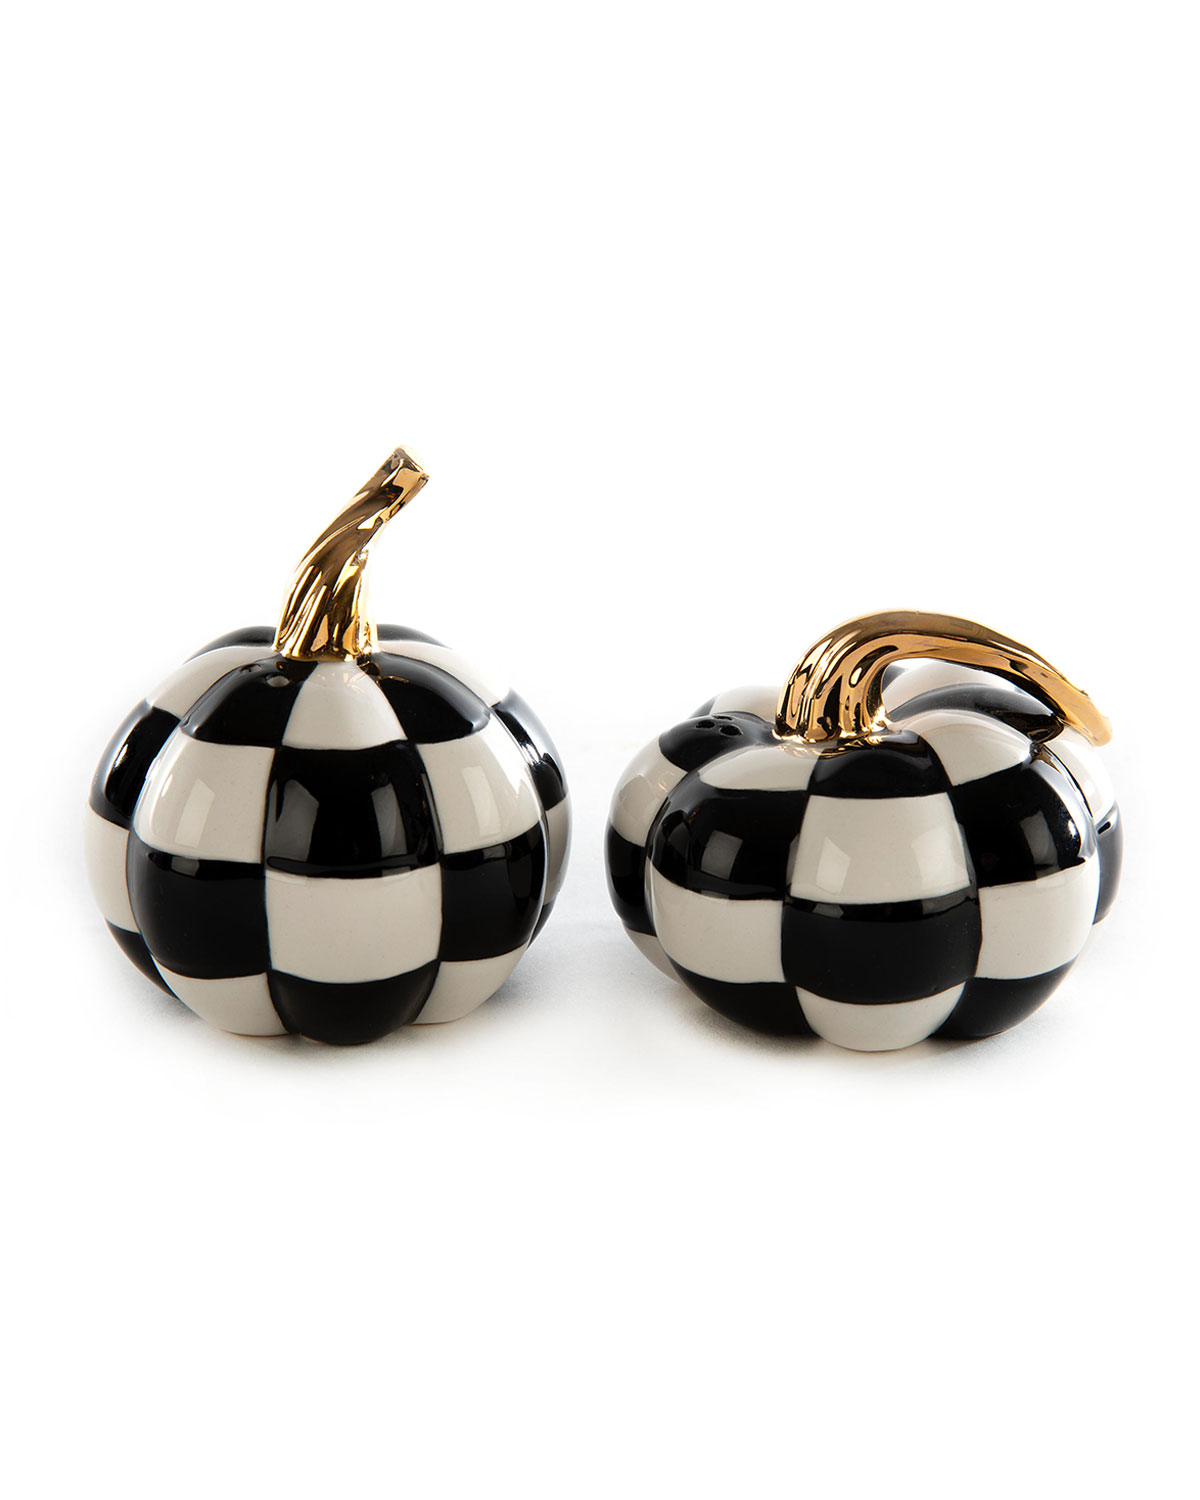 MacKenzie-Childs Mod Pumpkin Salt and Pepper Shakers Set